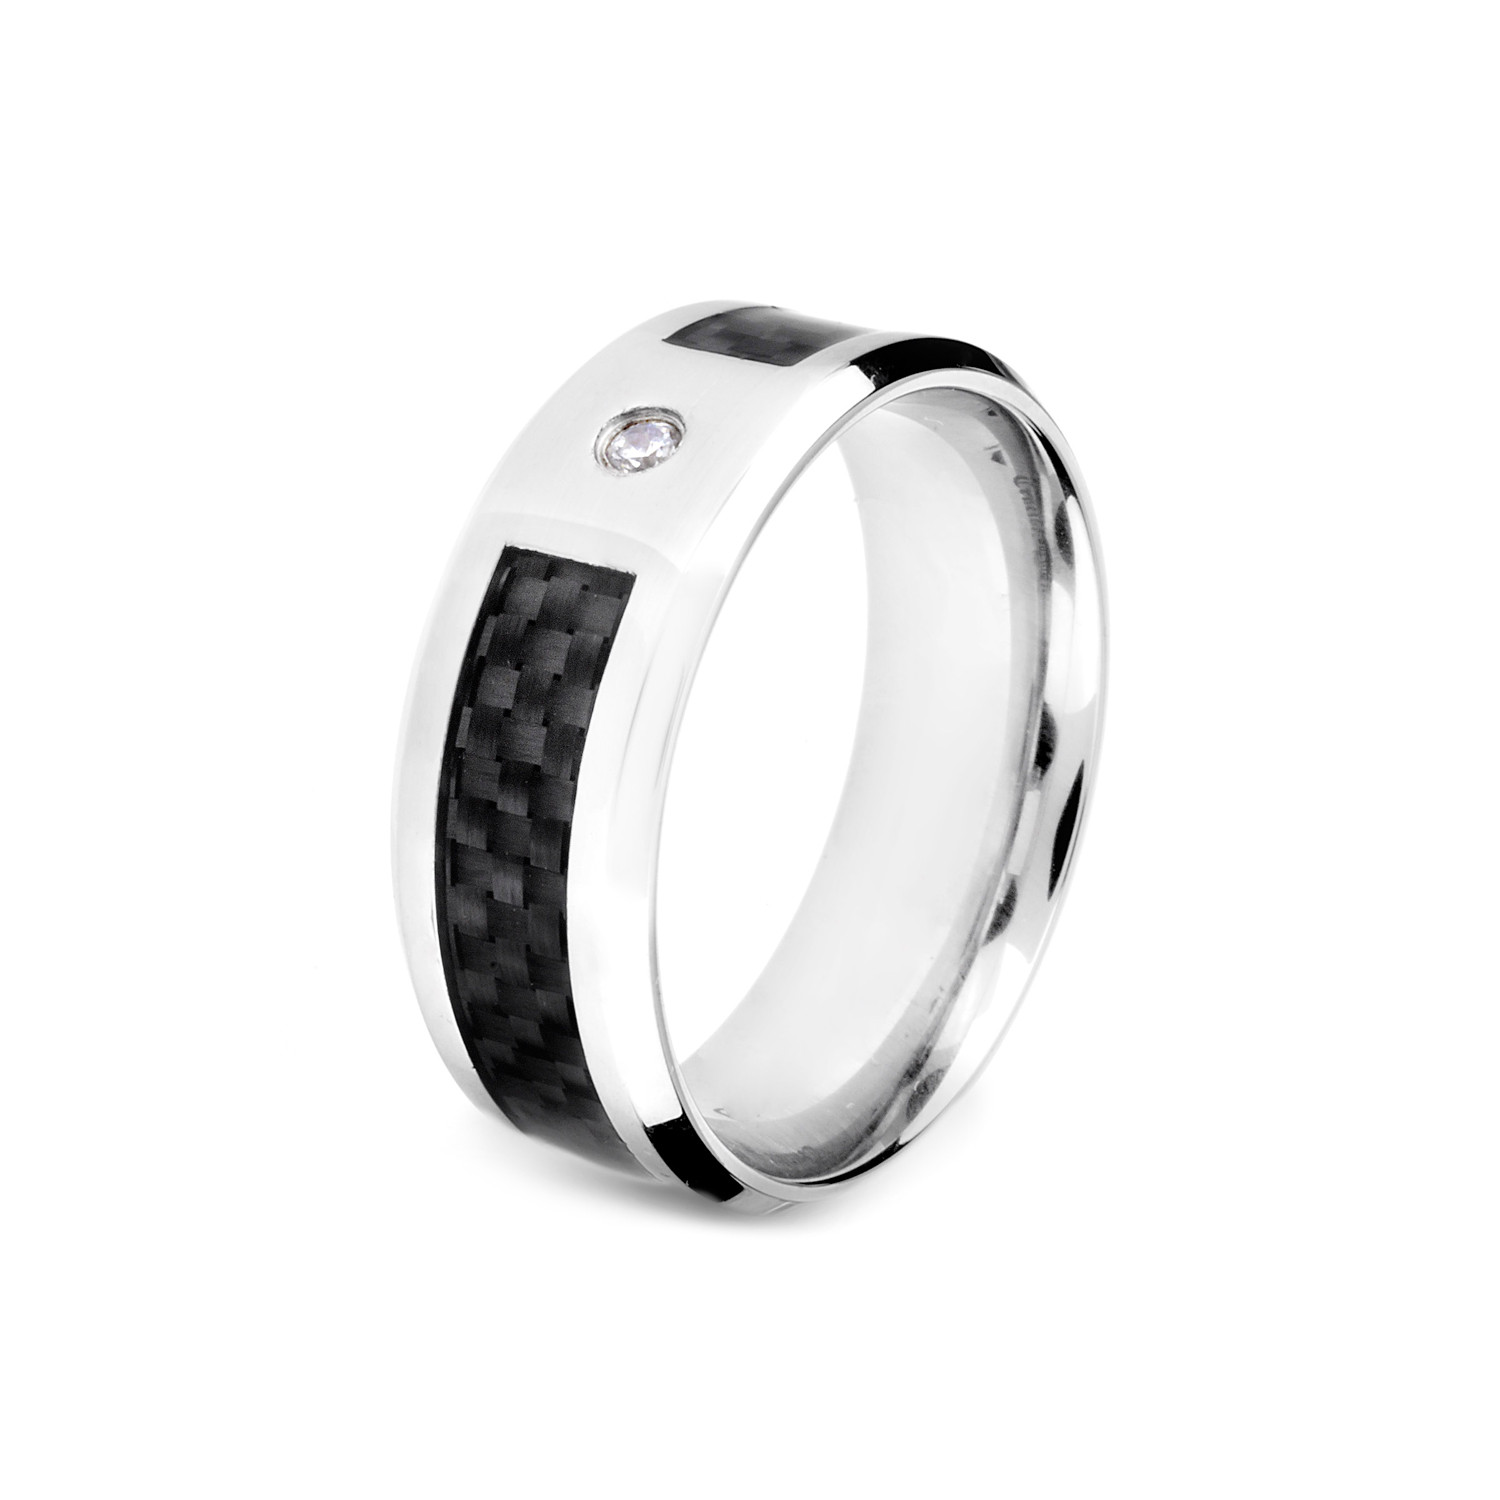 black singles in zirconia As seen in bridal guide magazine, berricle sterling silver cubic zirconia cz wedding rings, wedding bands and eternity bands are one of the most coveted diamond alternative available today made only with premium quality cz.